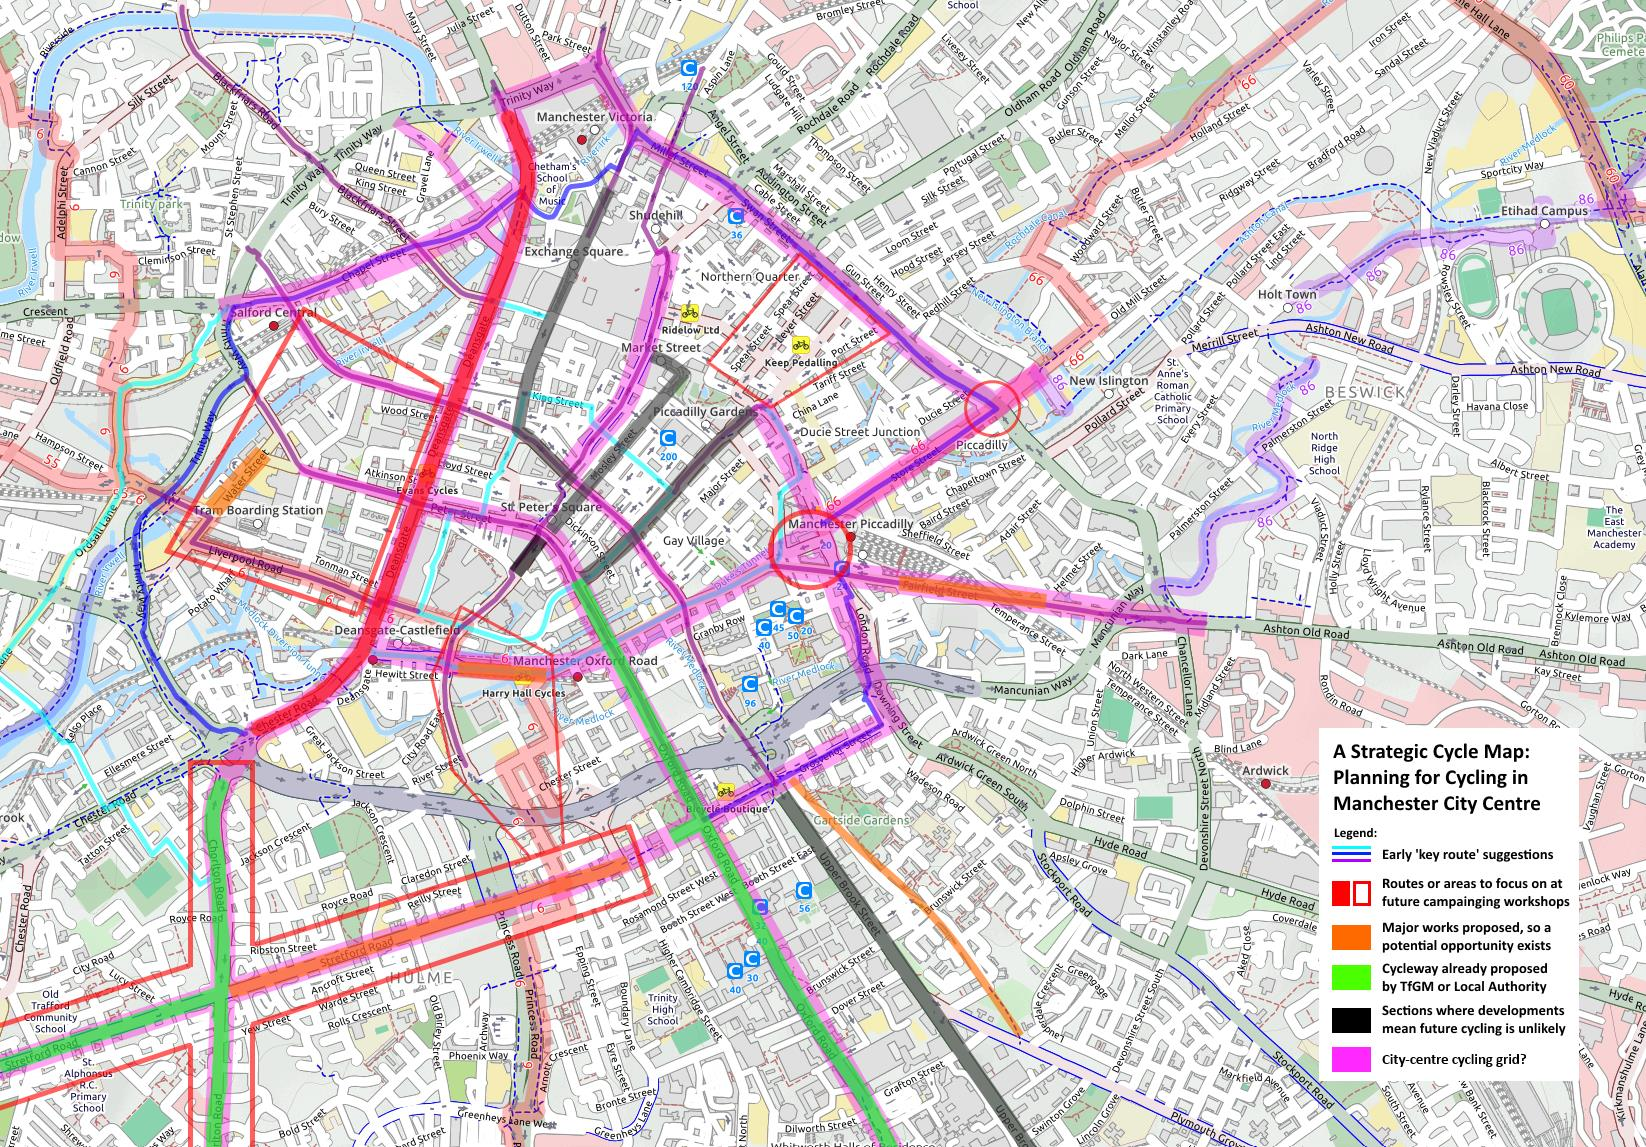 Plans for cycling in Manchester citycentre GMCC Greater